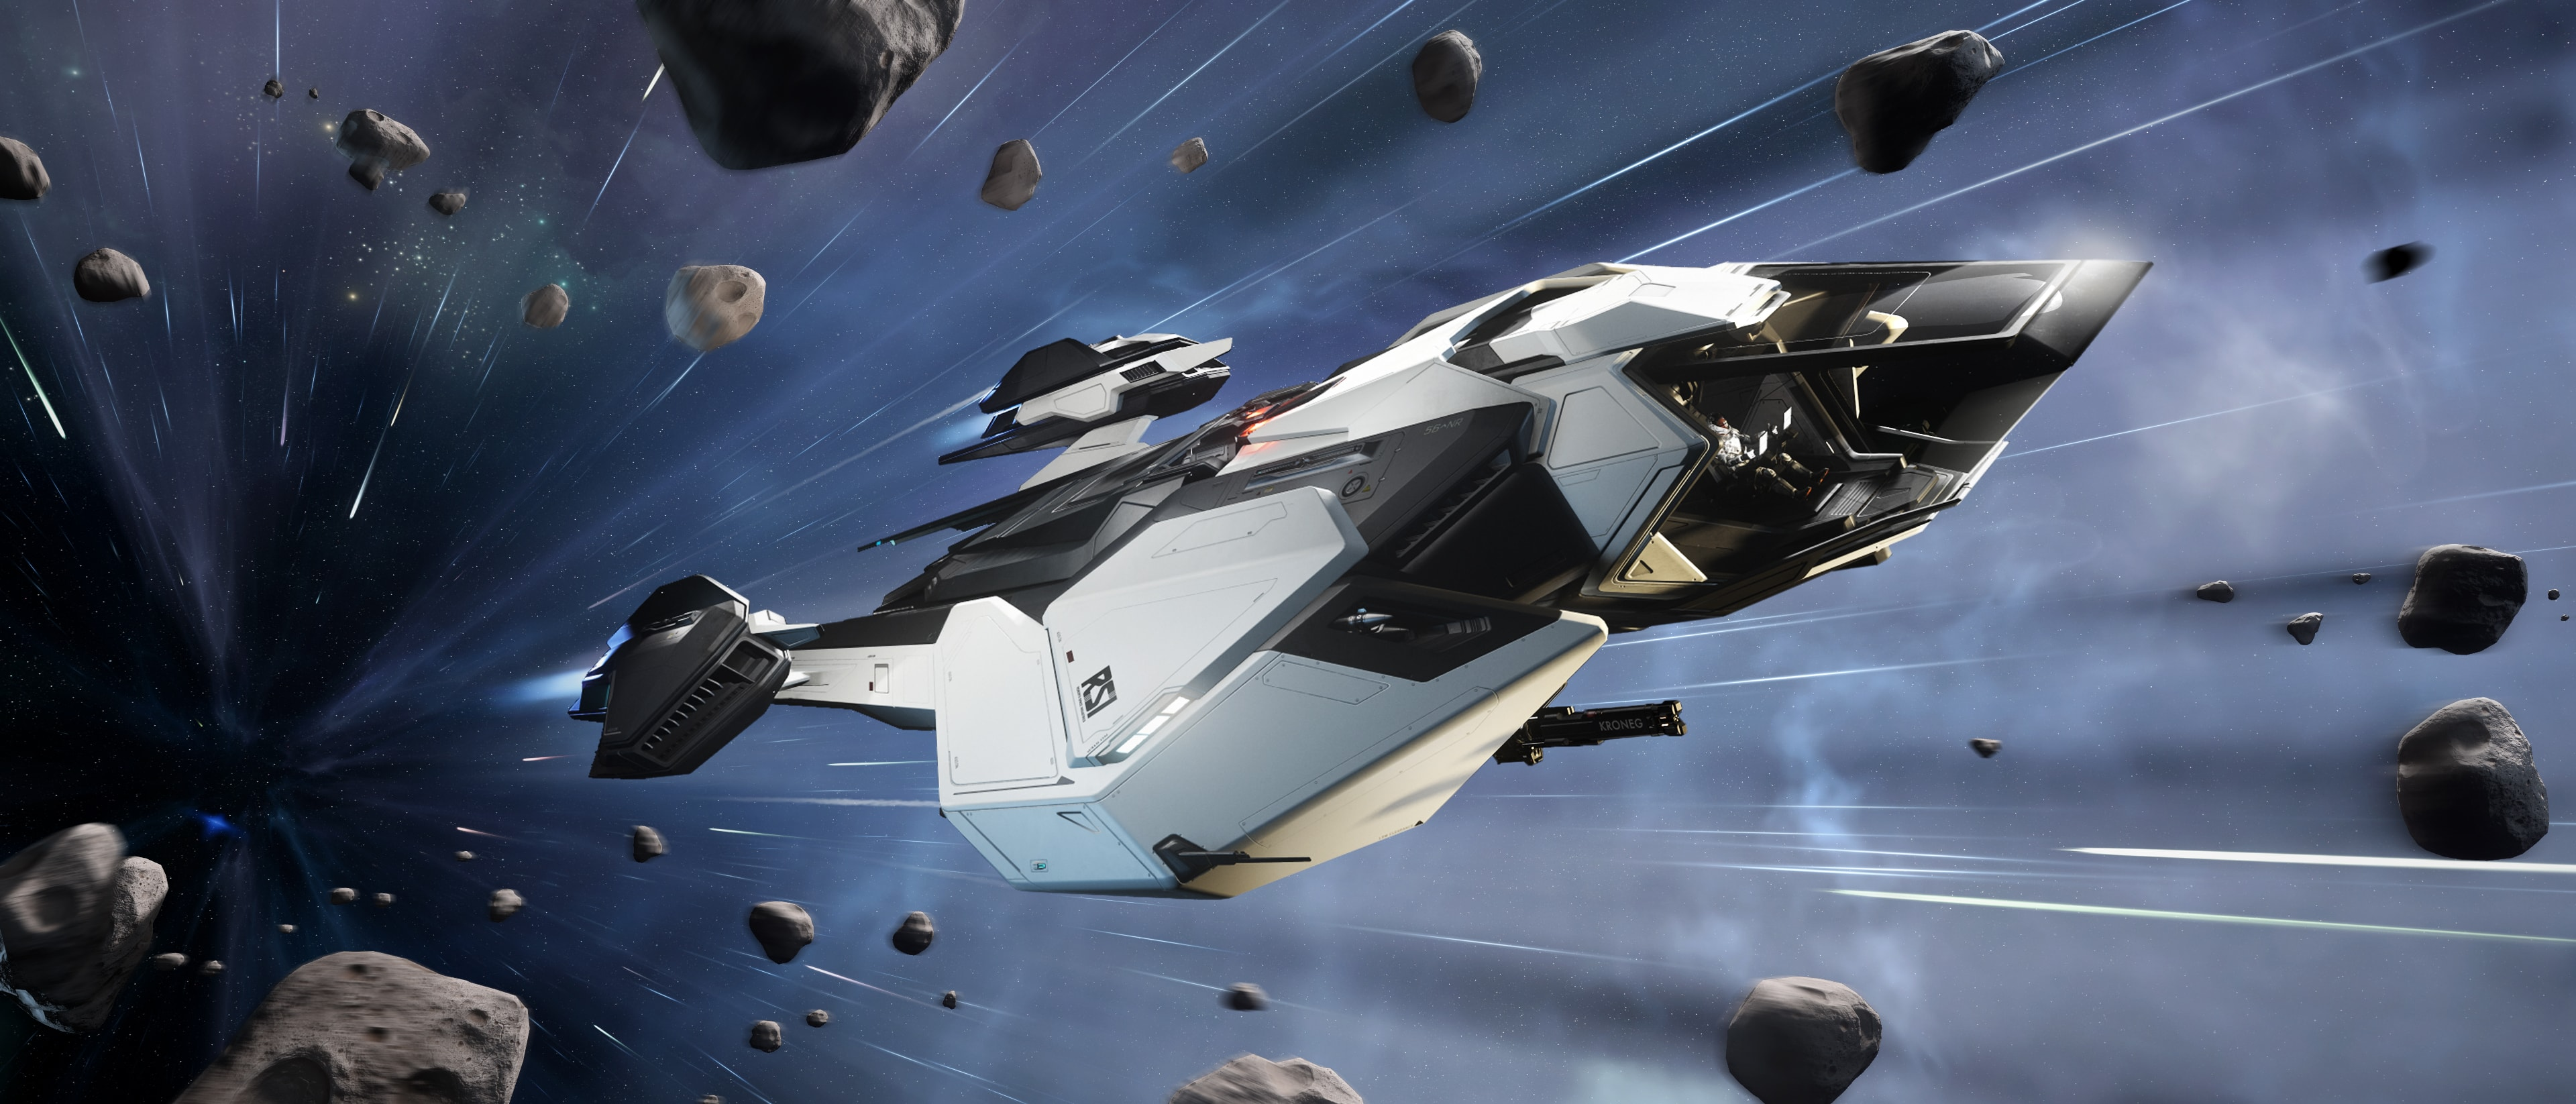 The Rsi Mantis Roberts Space Industries Follow The Development Of Star Citizen And Squadron 42